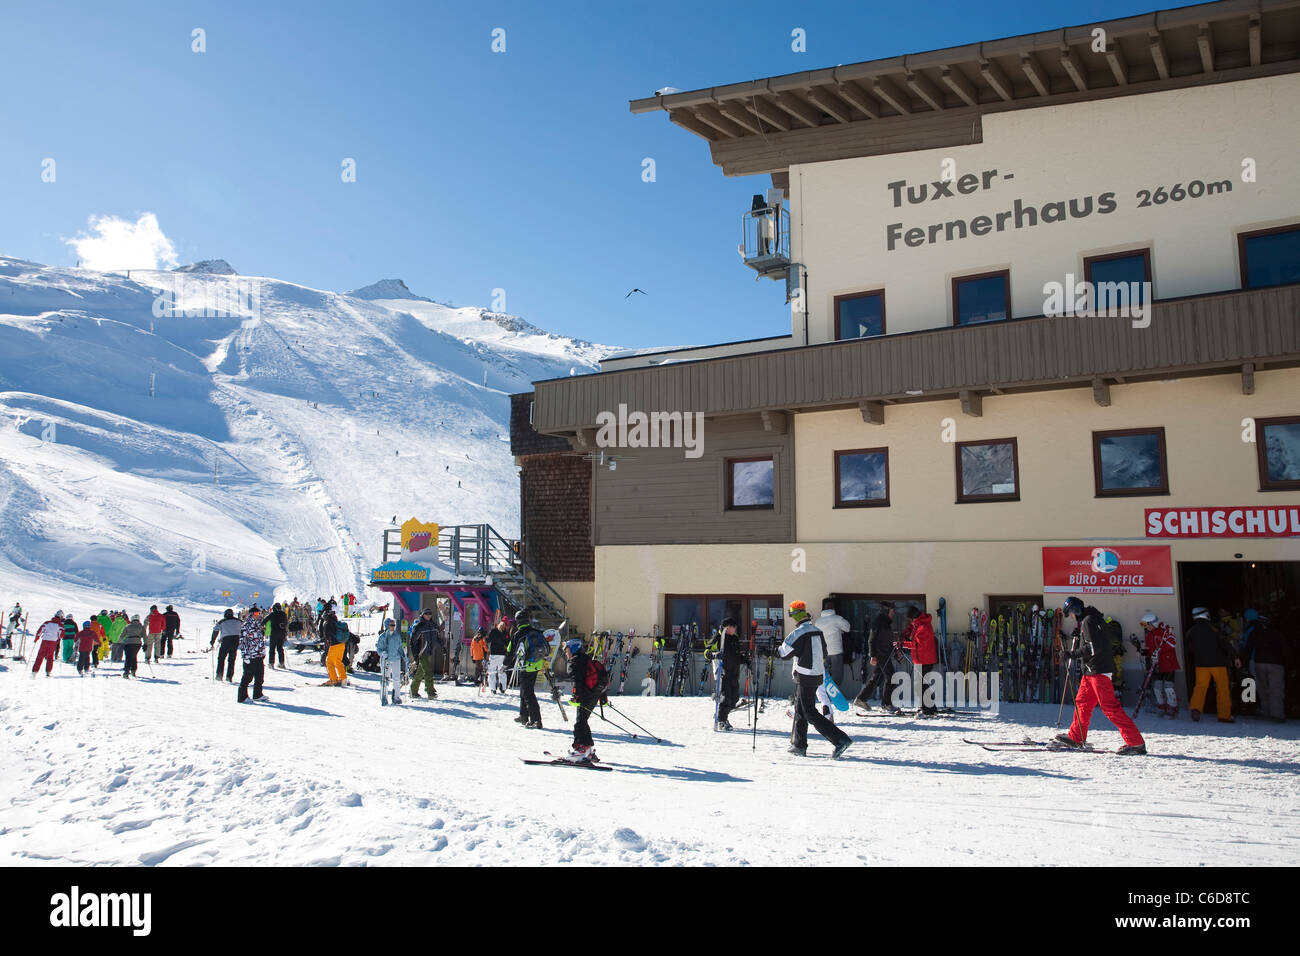 Skifahrer am,Tuxer Fernerhaus, Skier at the,Tuxer Ferner house - Stock Image